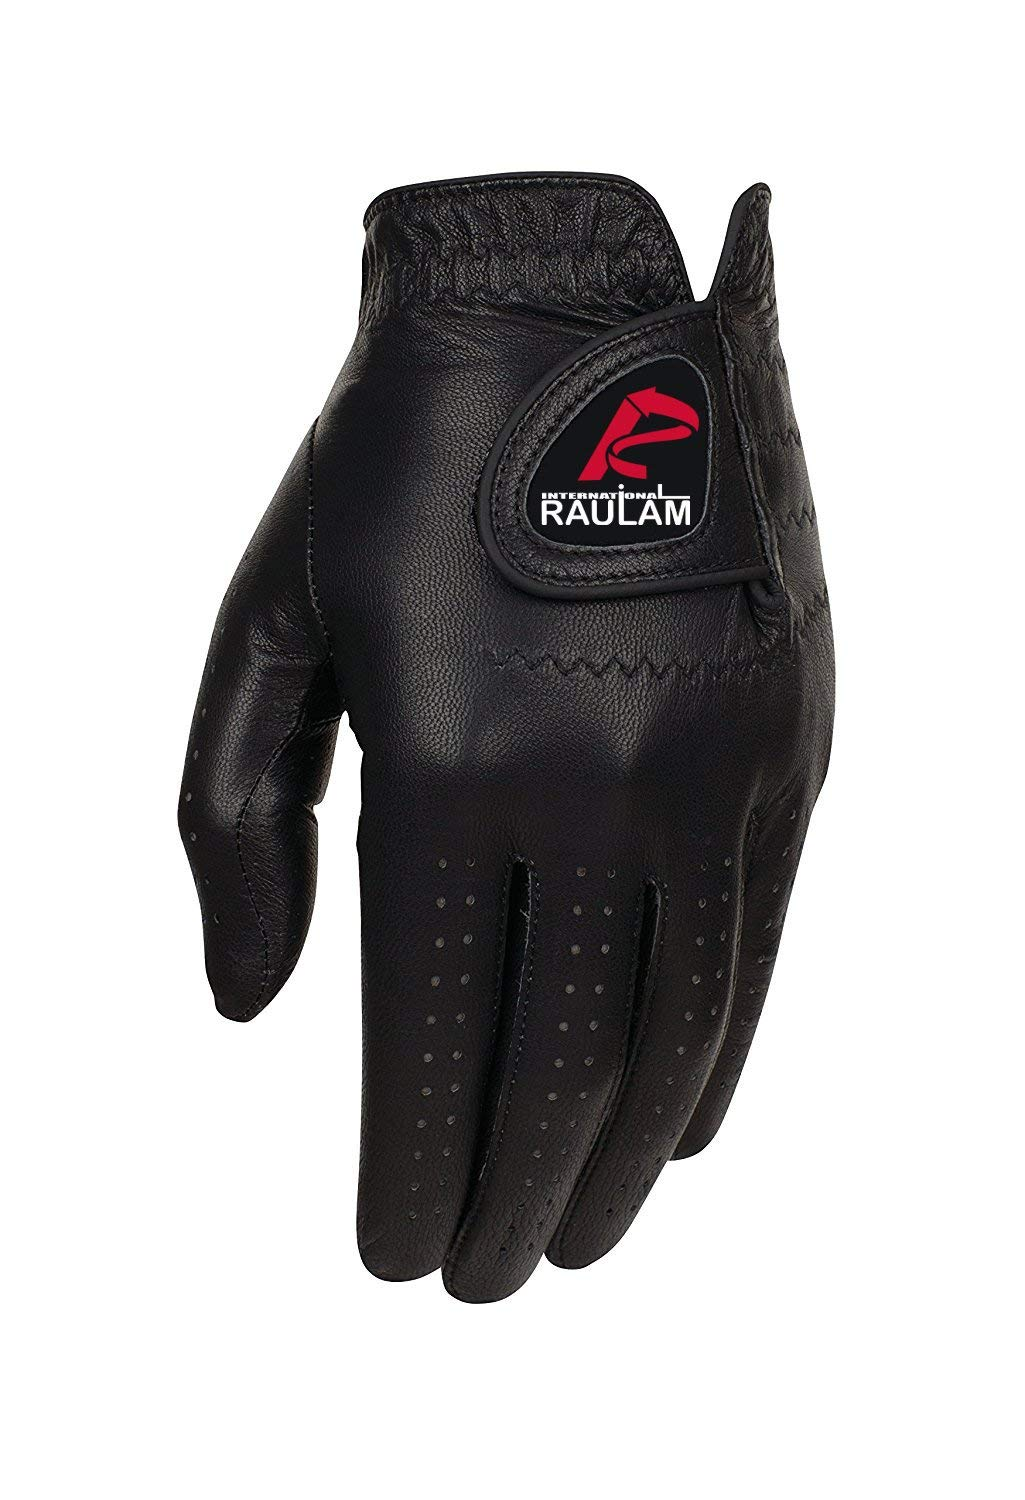 Black Leather Golf Gloves With Perfect Grip Best Quality for Men and Women,Golf Glove Men Left Hand-Golf Glove Women Left Hand/Right Hand,Black Leather Golf Glove Left Hand/Right Hand By Raulam Int.